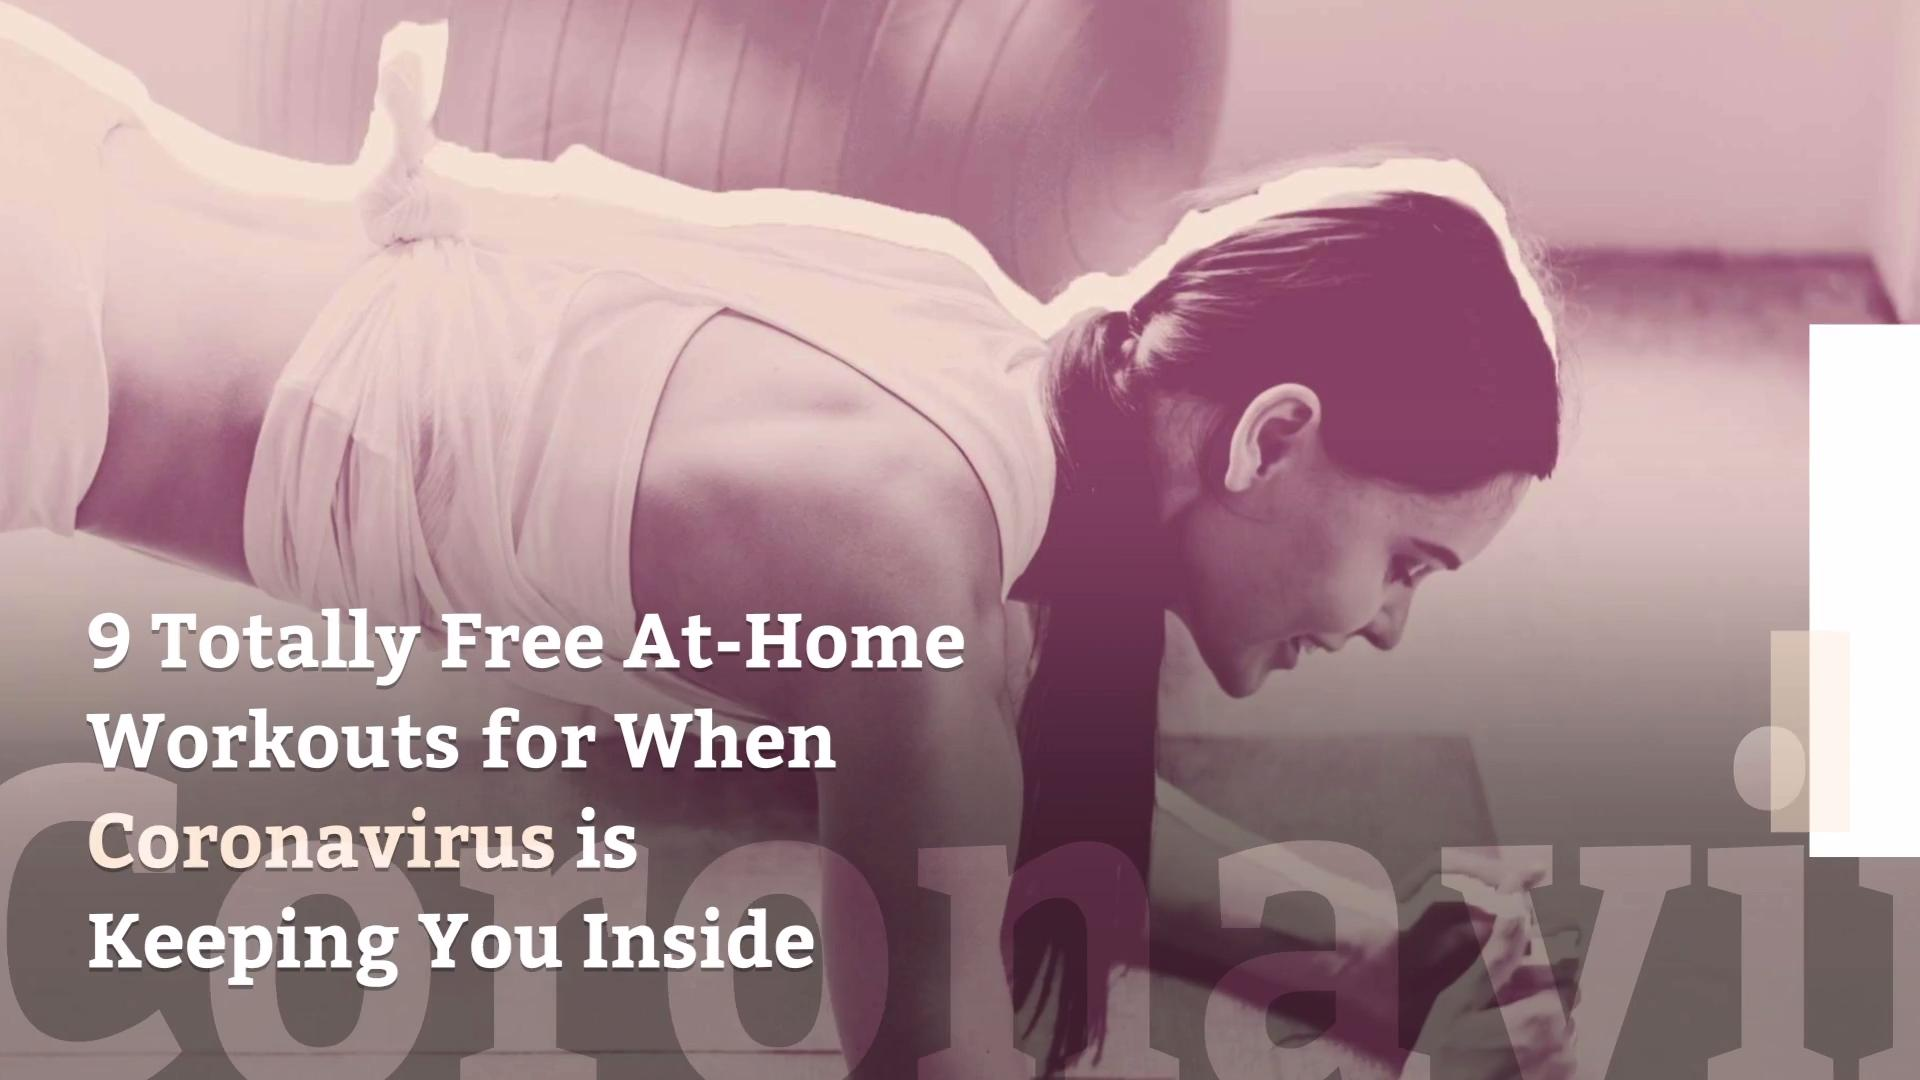 9 Free At Home Workouts To Do During The Coronavirus Outbreak Health Com